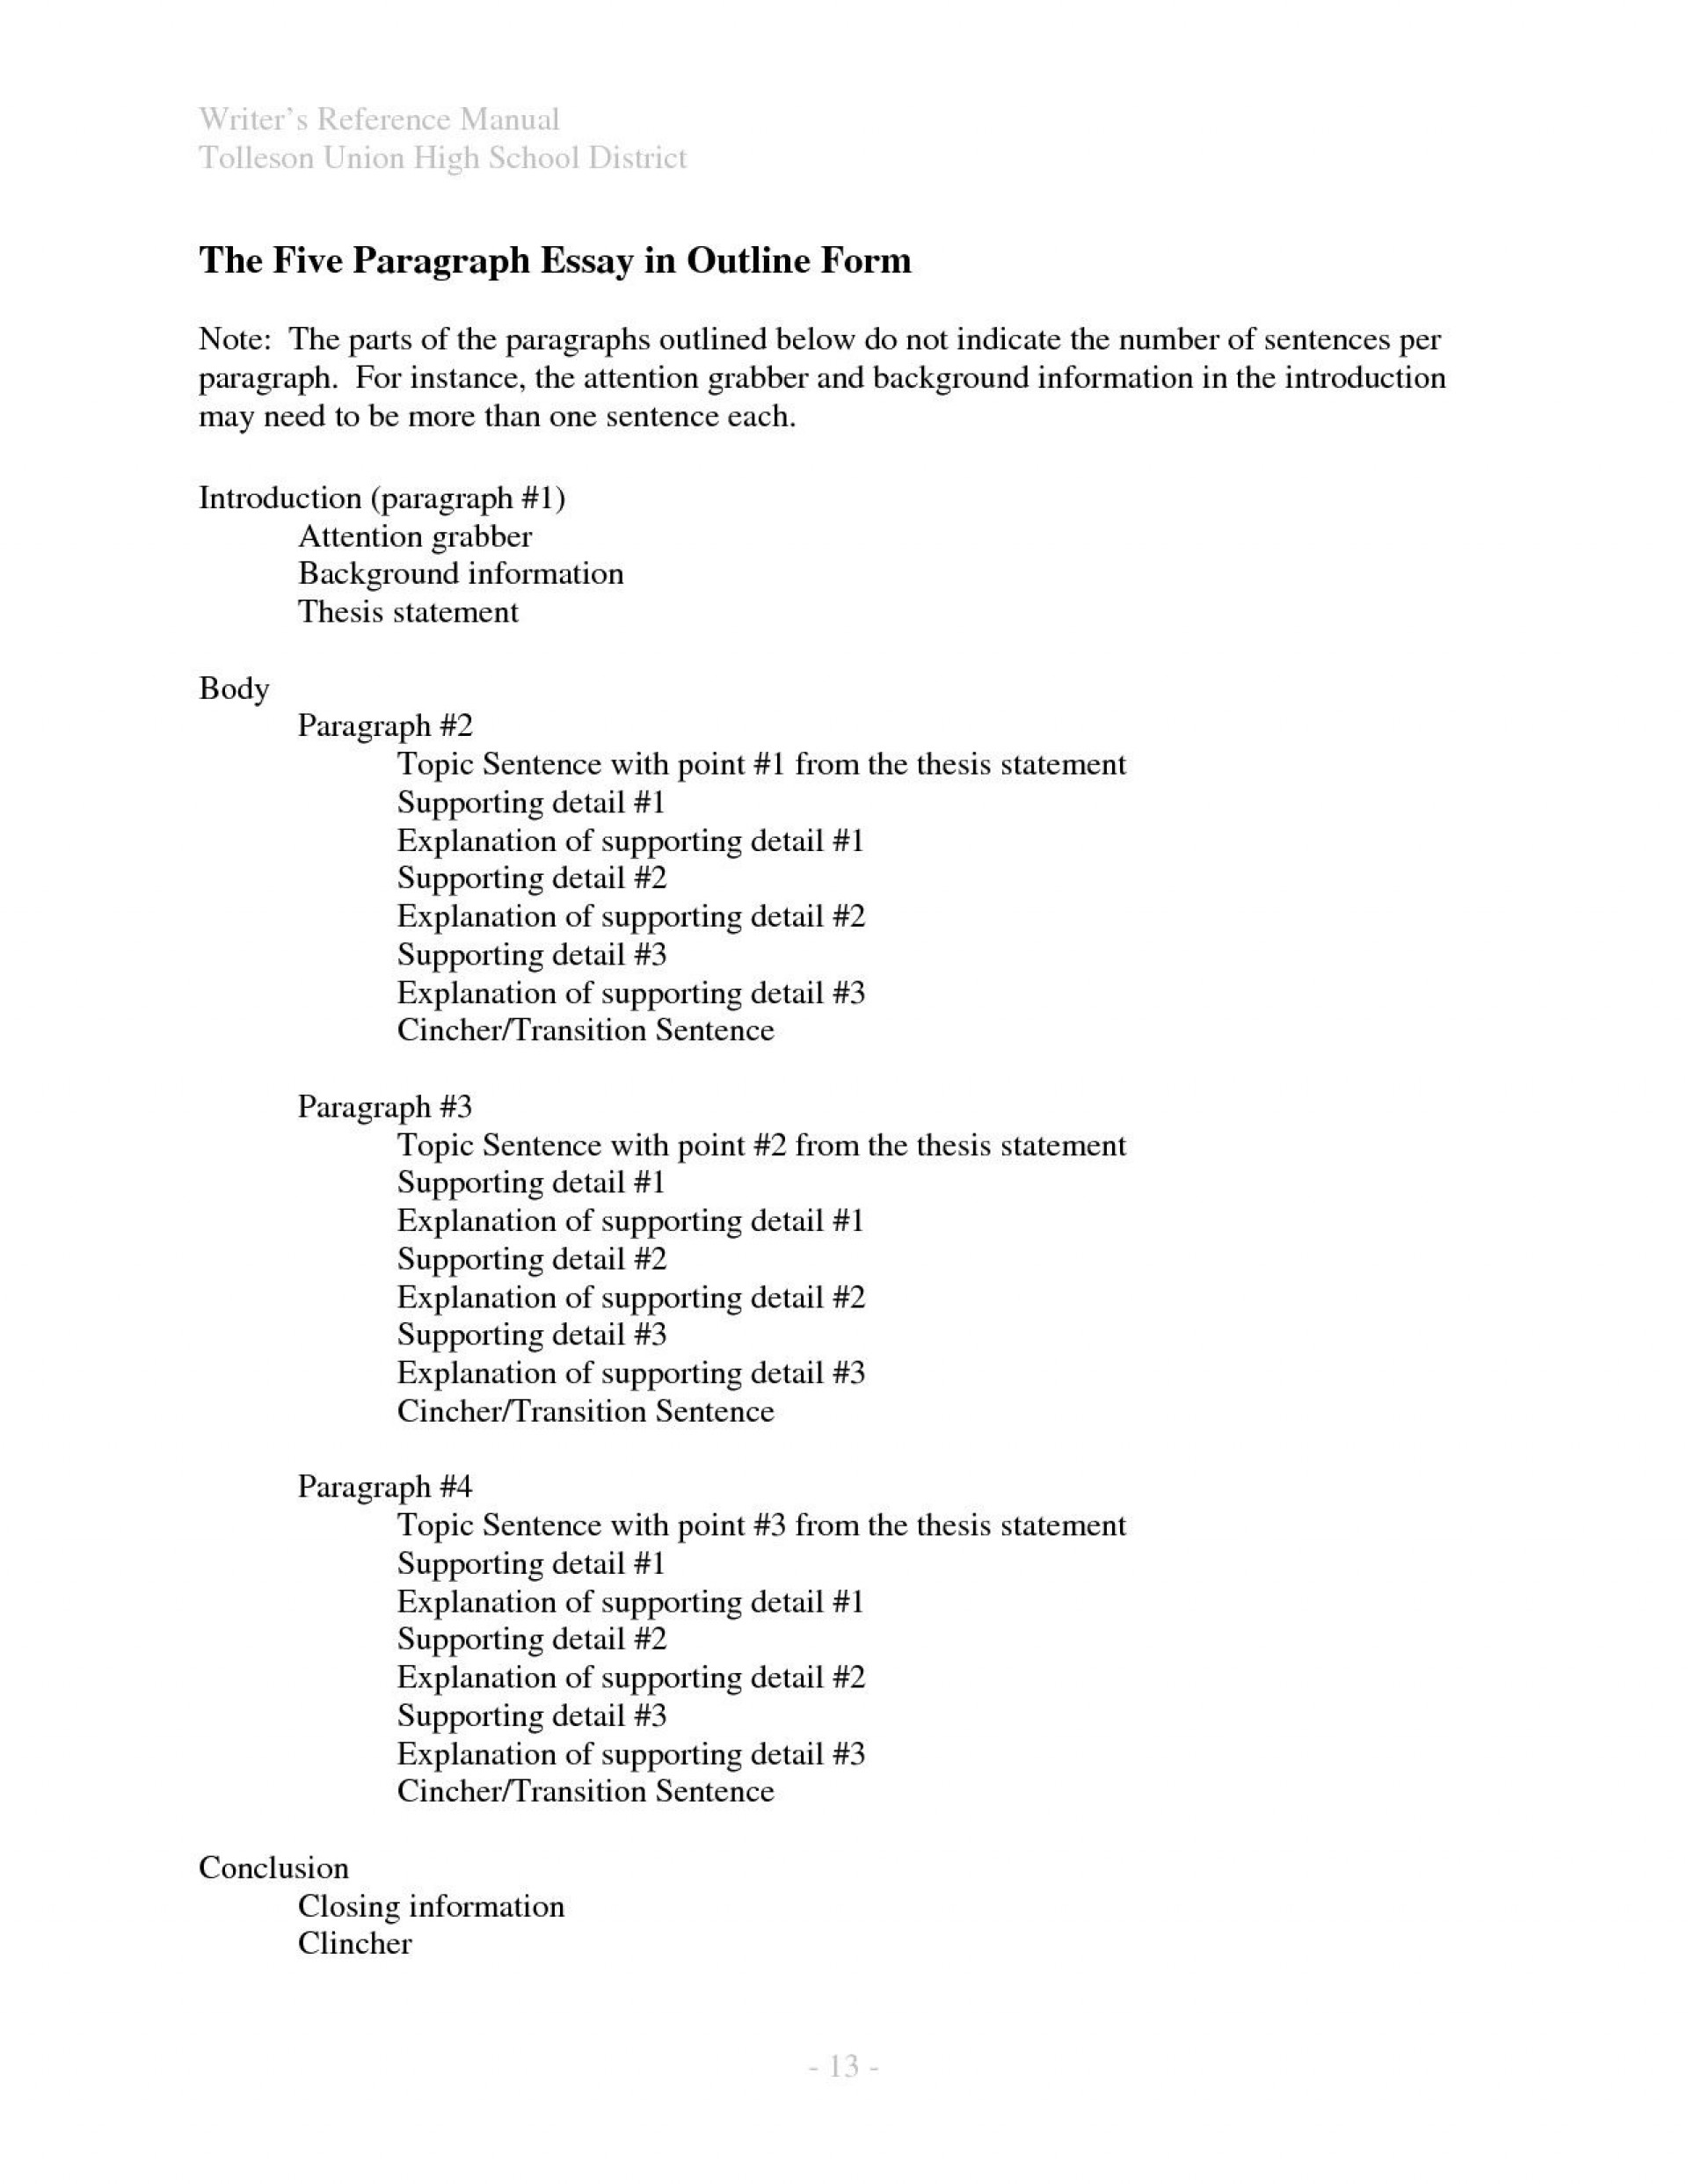 011 Intro Paragraph Outline Research Best Paper Introduction For 1920